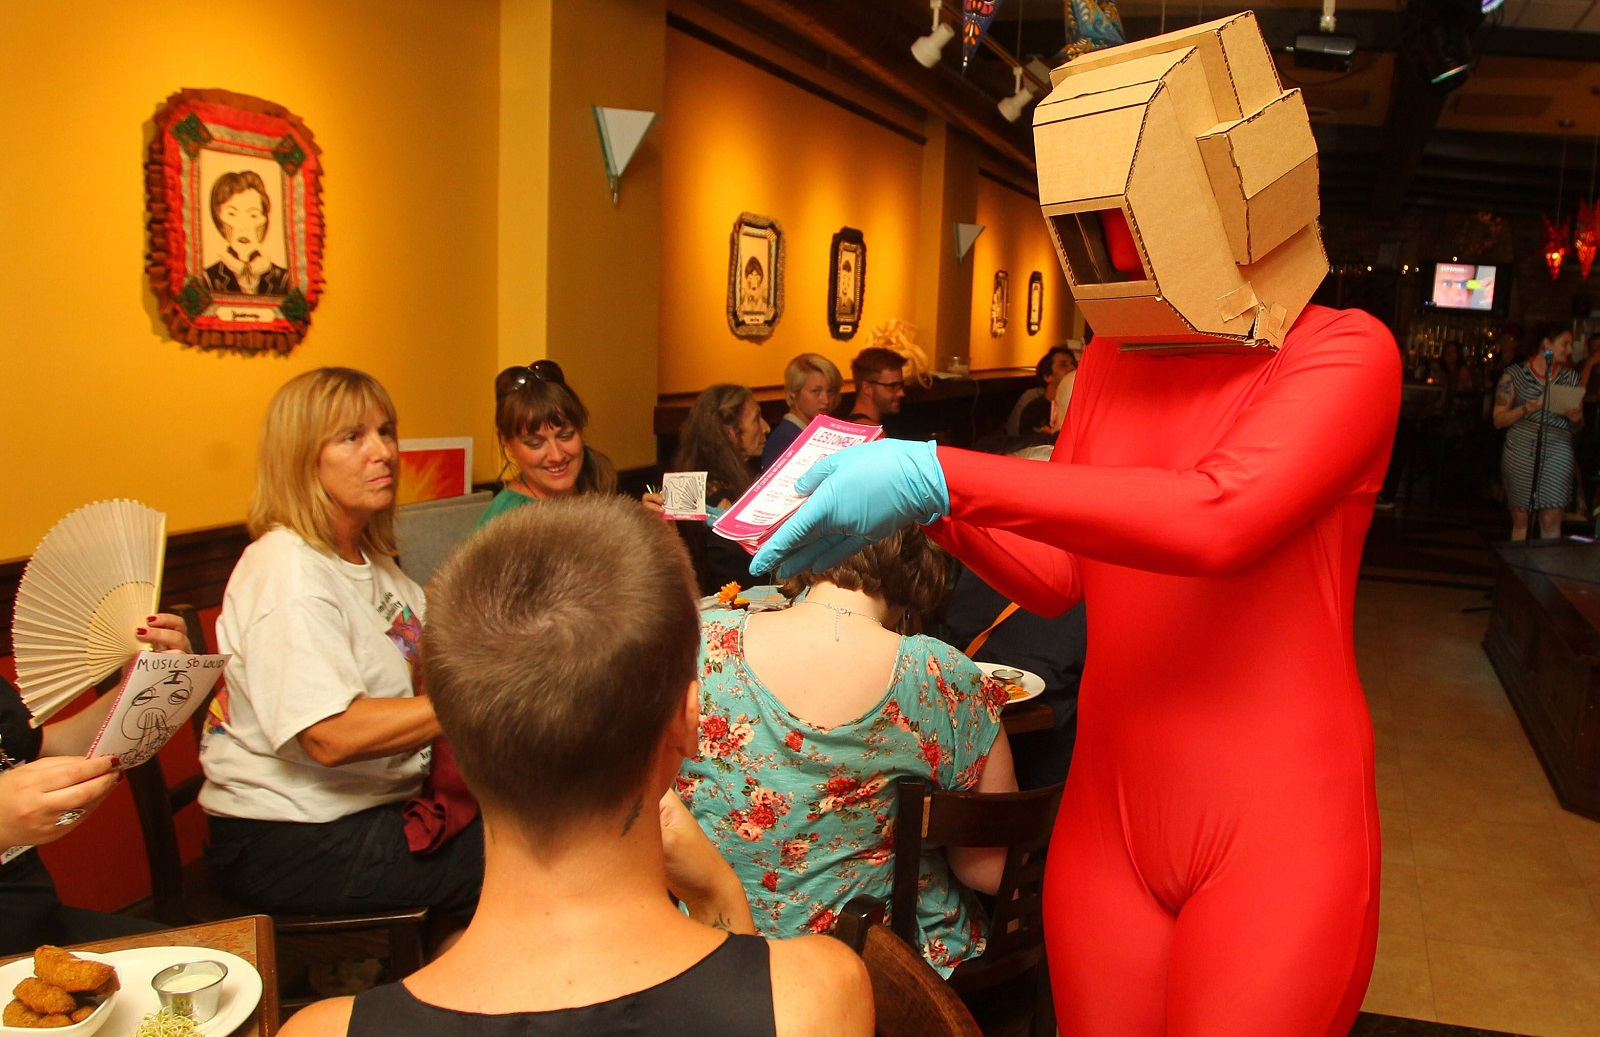 A robot for Lesionread passes out fliers during the media day showcase of art for the Infringement Festival at Merge in 2013. (Mark Mulville/Buffalo News file photo)